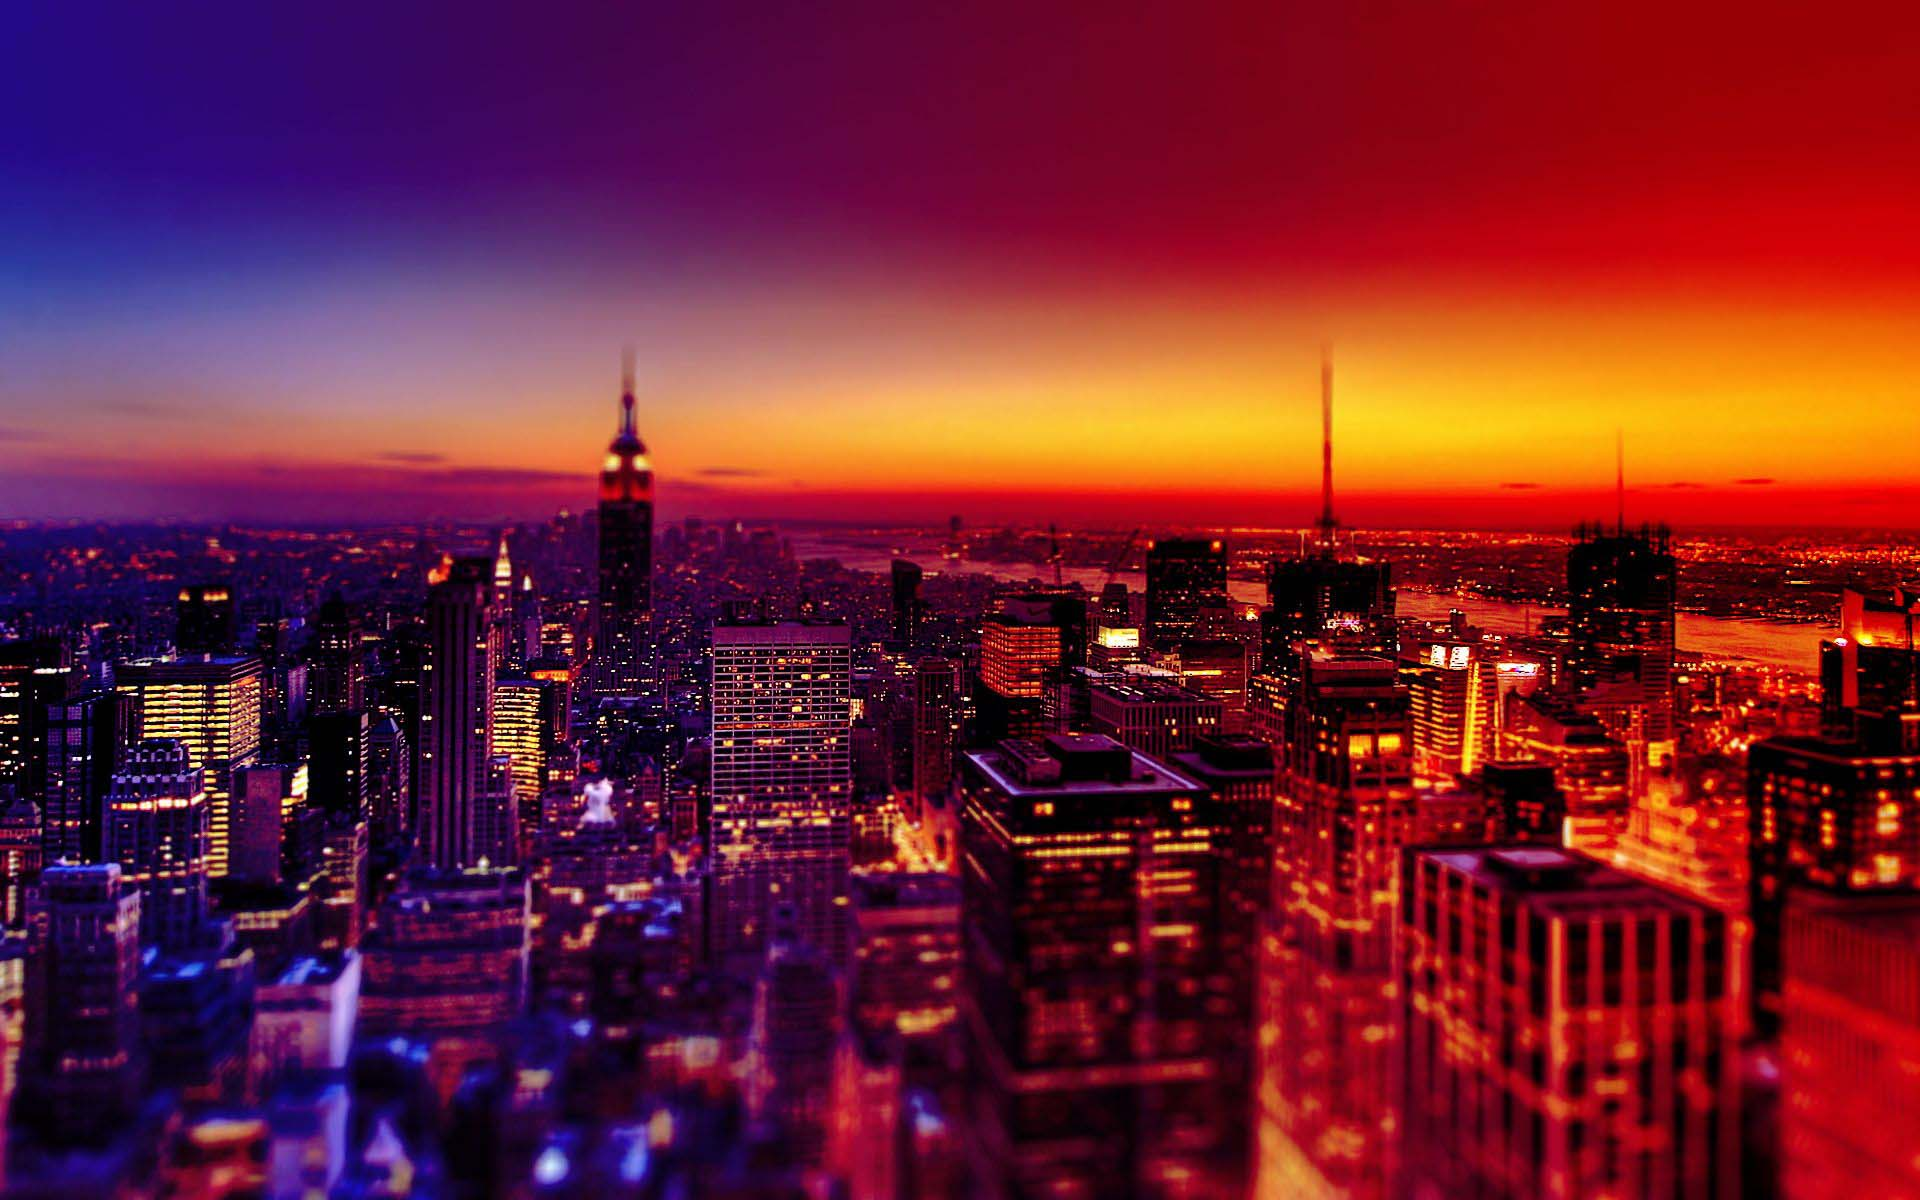 City at night wallpaper